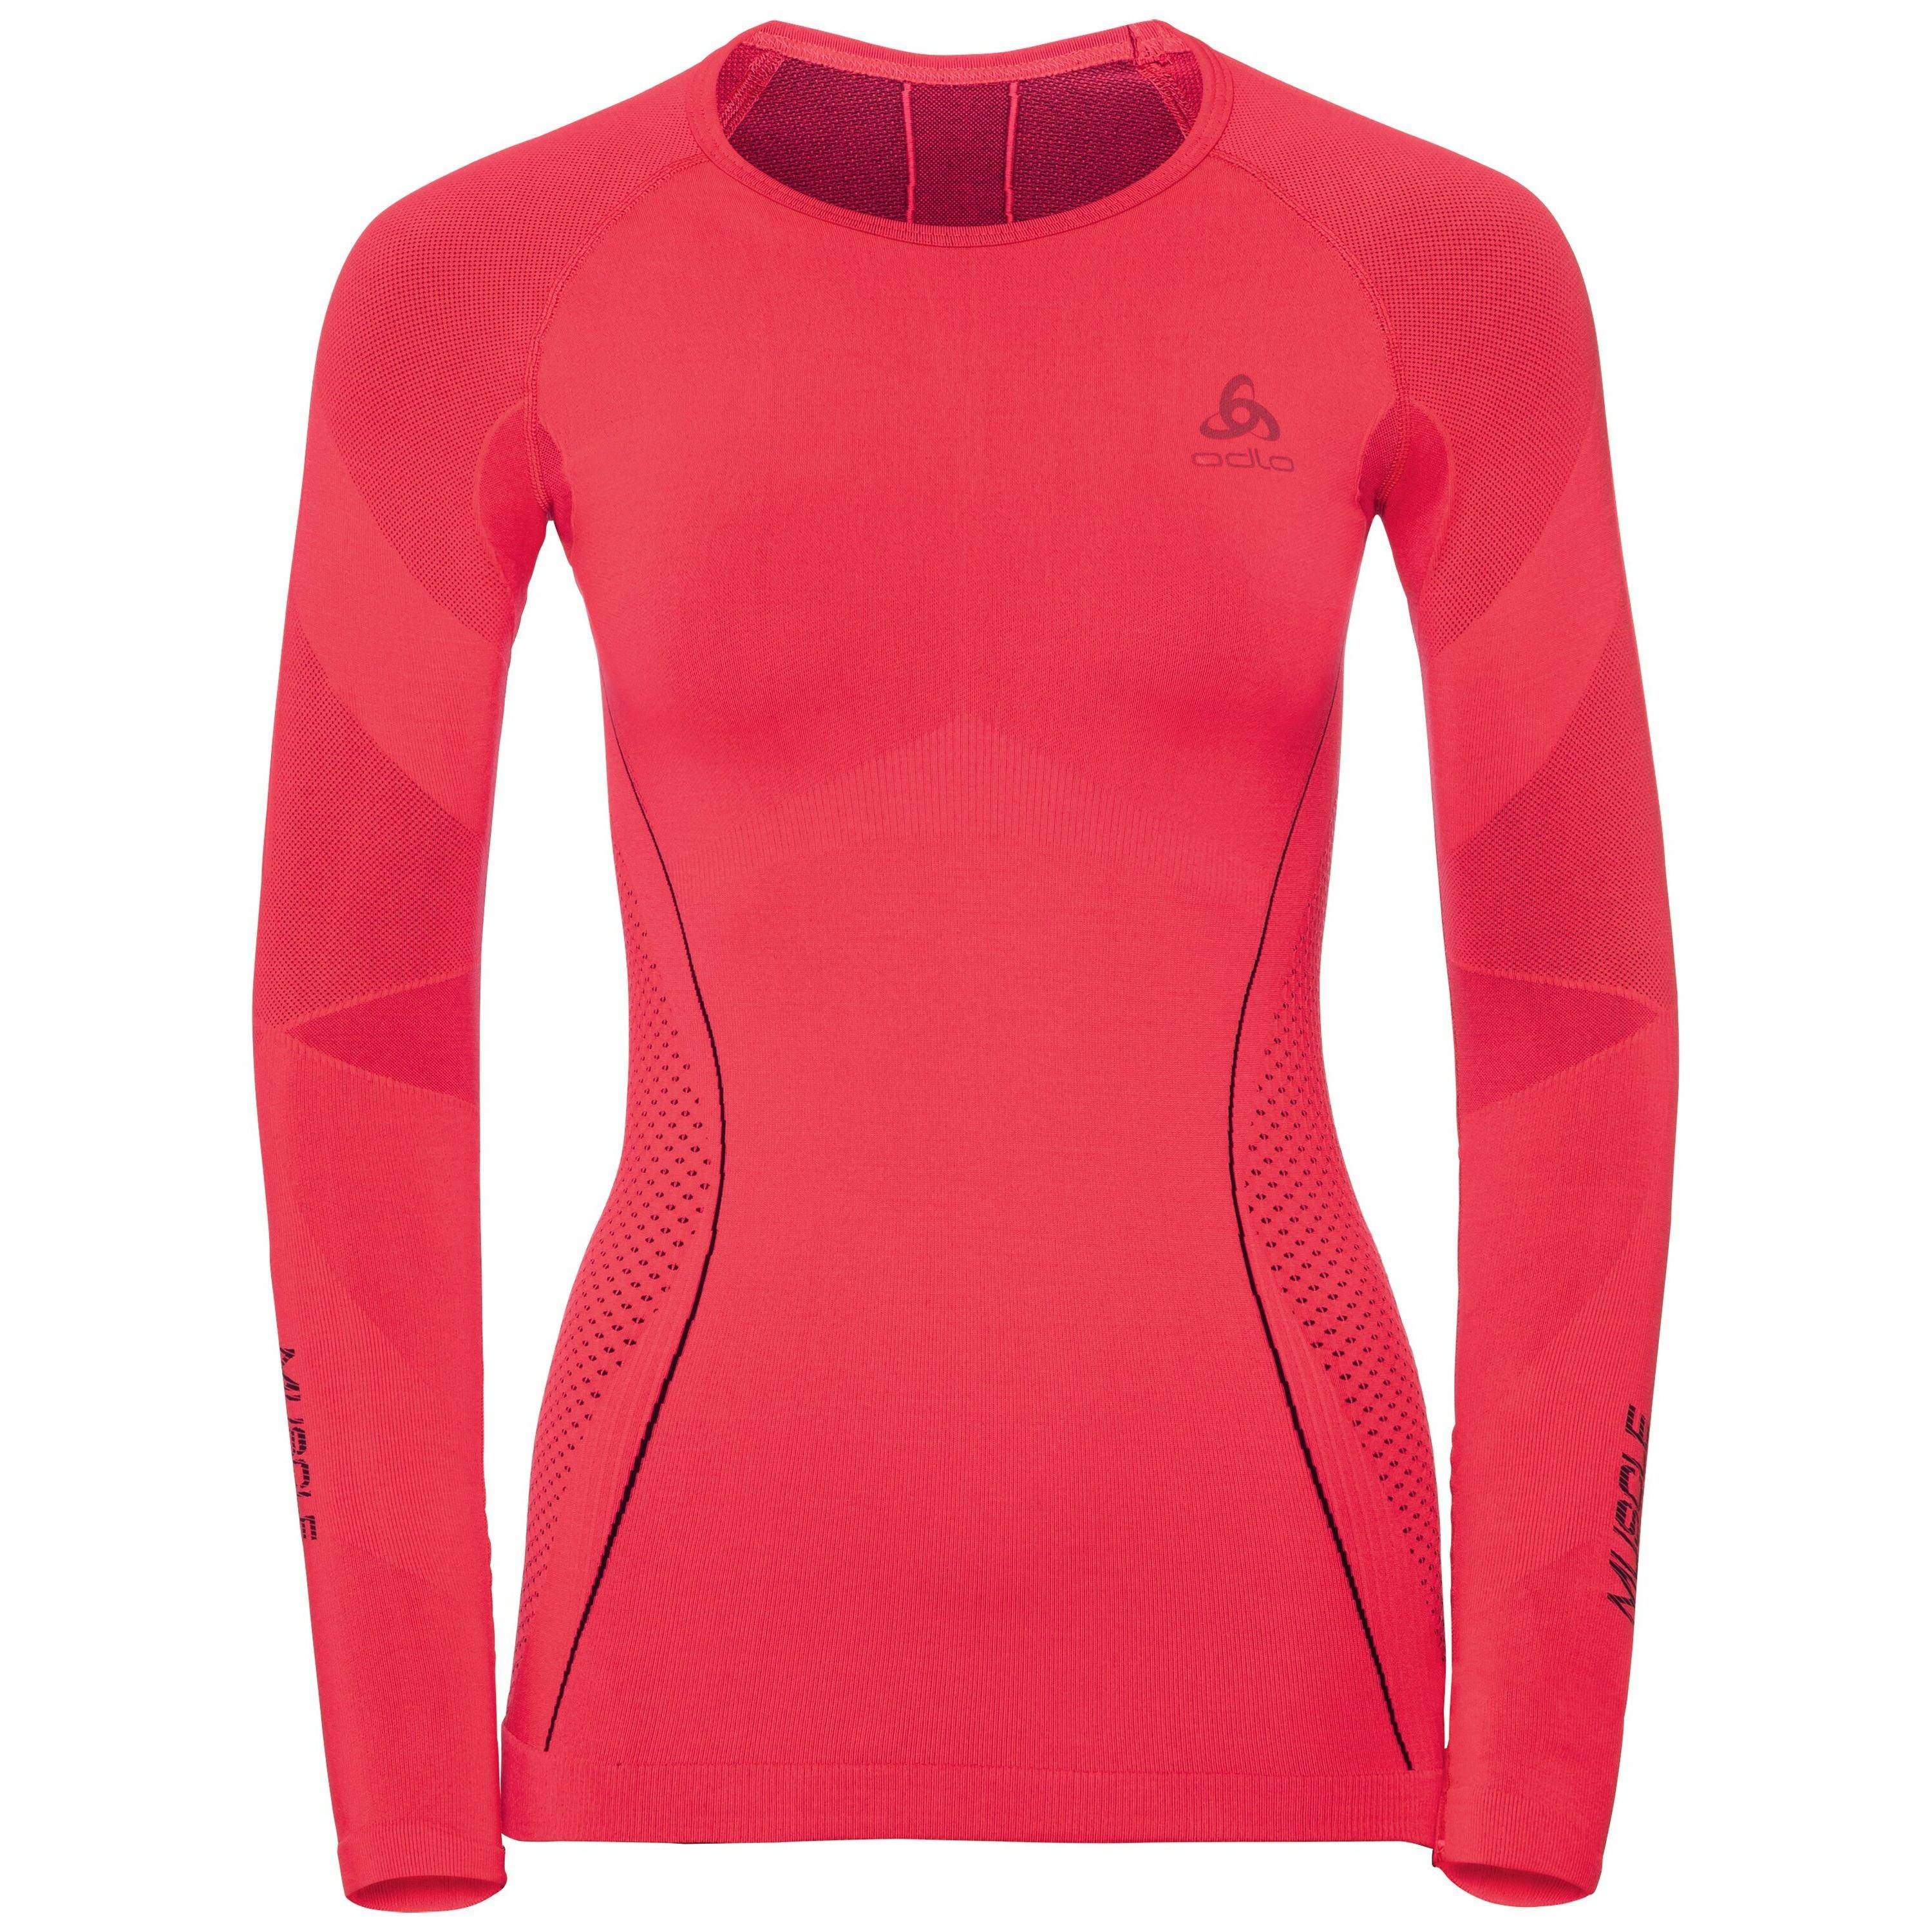 Odlo SVS top col ras du cou manches longues Performance MUSCLE FORCE RUNNING Warm diva pink - odyssey gray taille: L